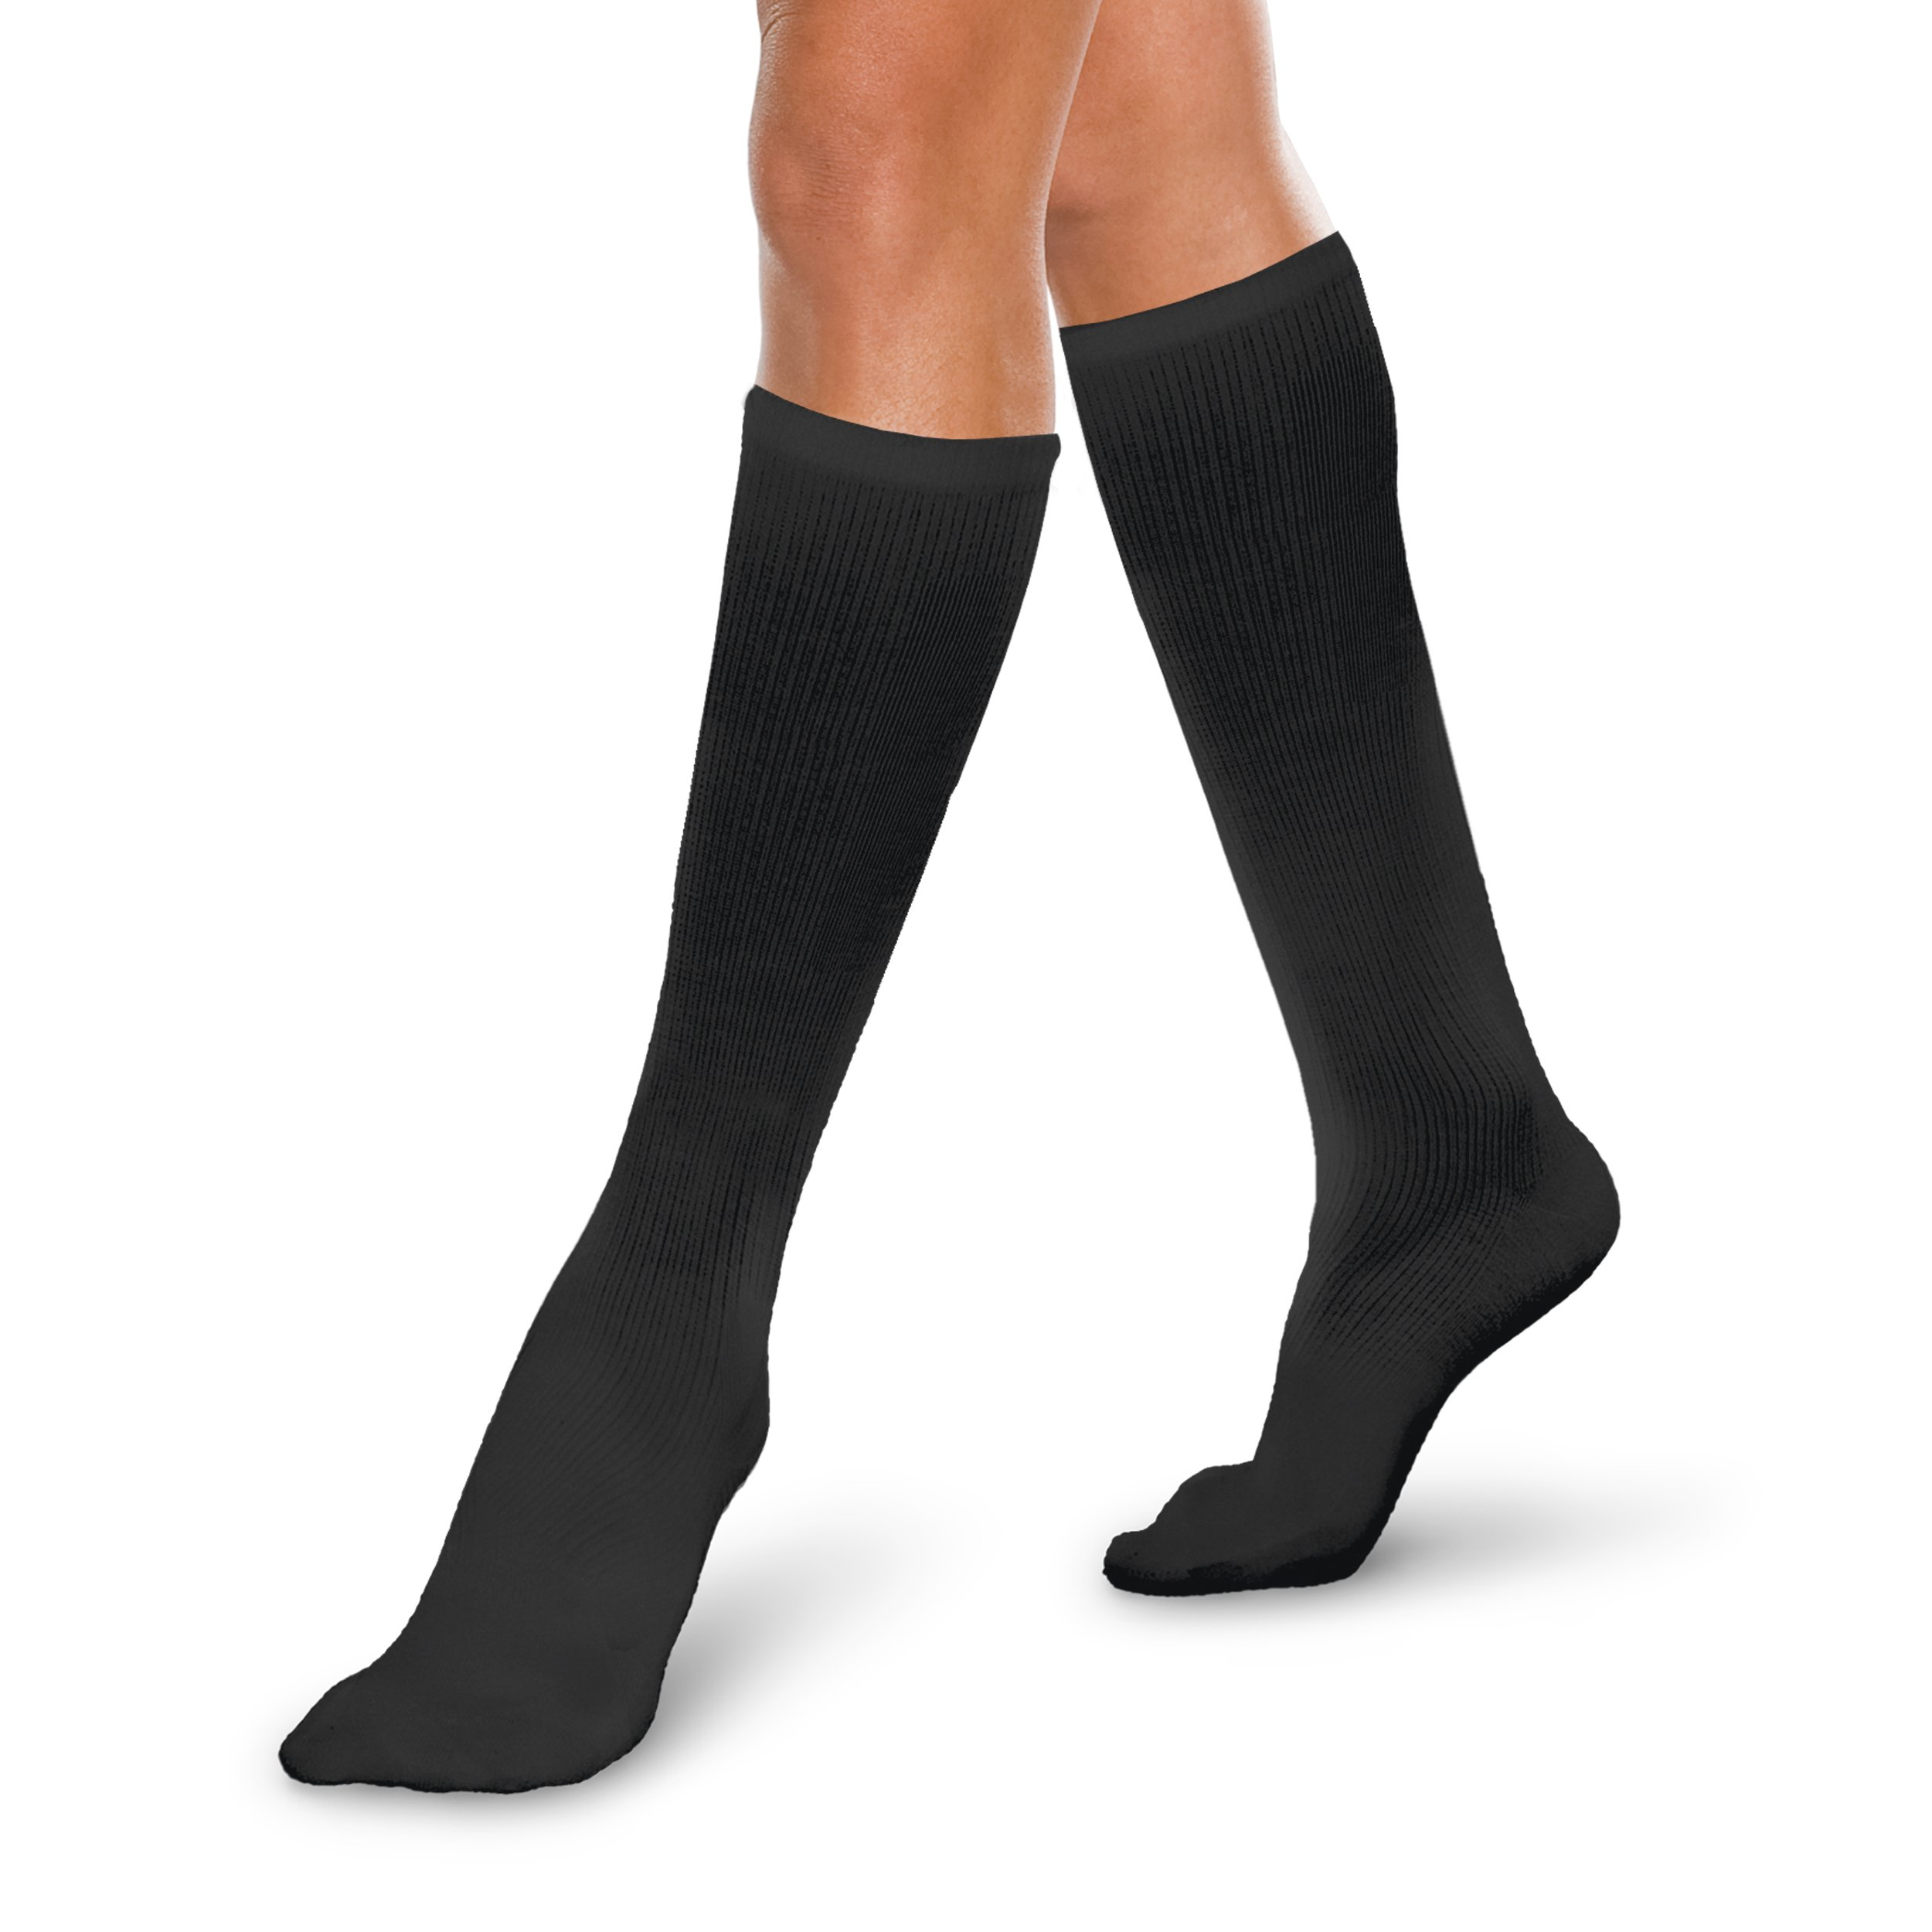 Core-Spun 30-40mmHg Firm Graduated Compression Support Knee High Socks (Black, Large) by CORE-SPUN BY THERAFIRM